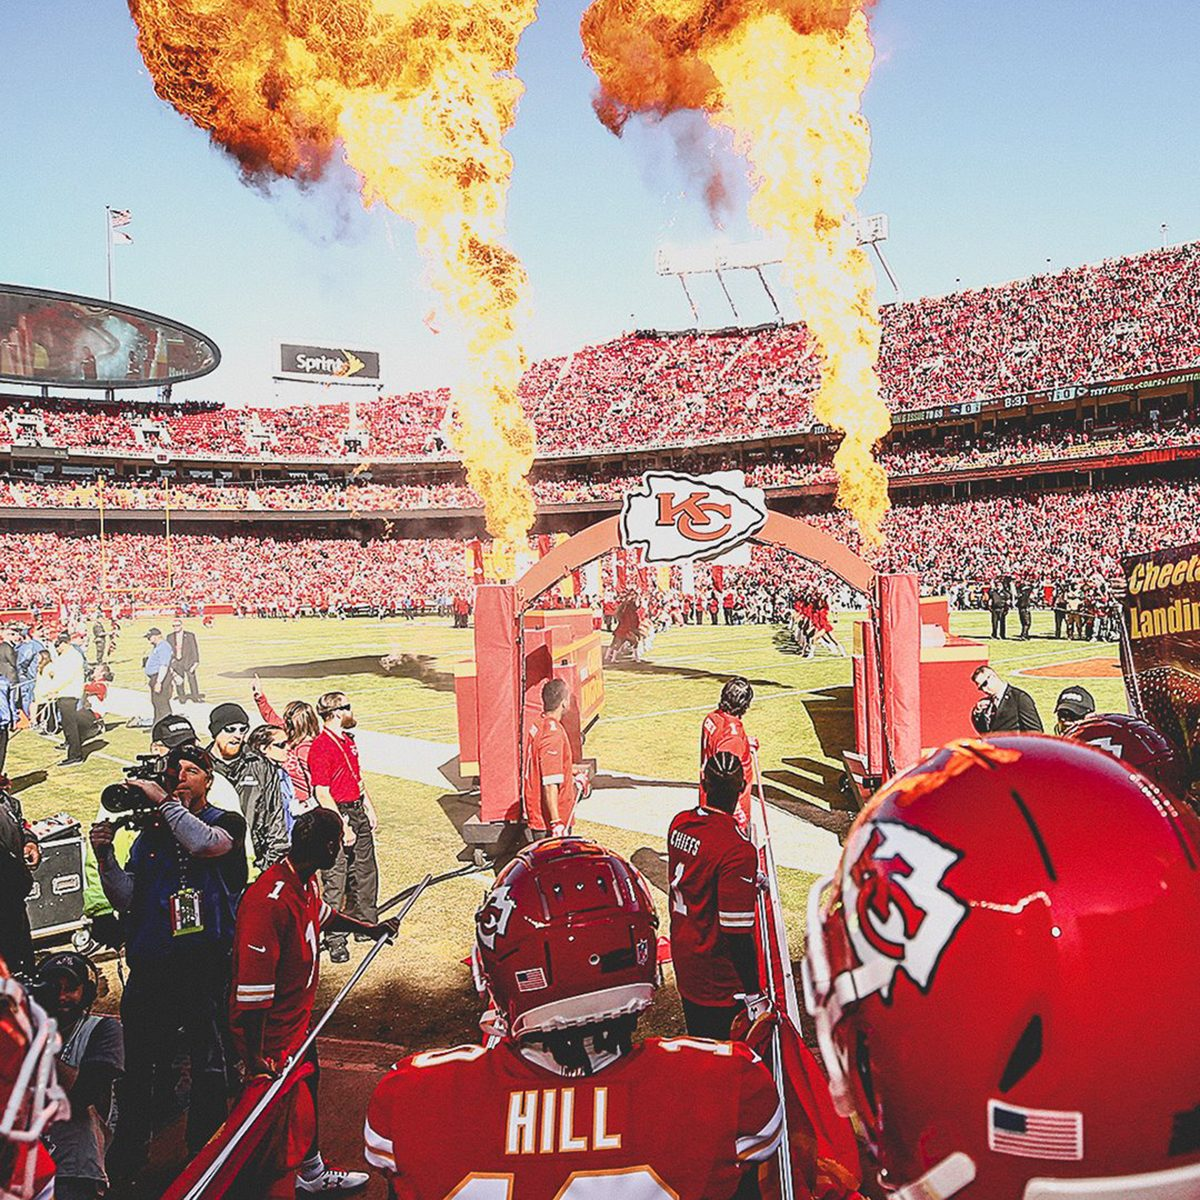 Kansas City Chiefs shooting off fire before game